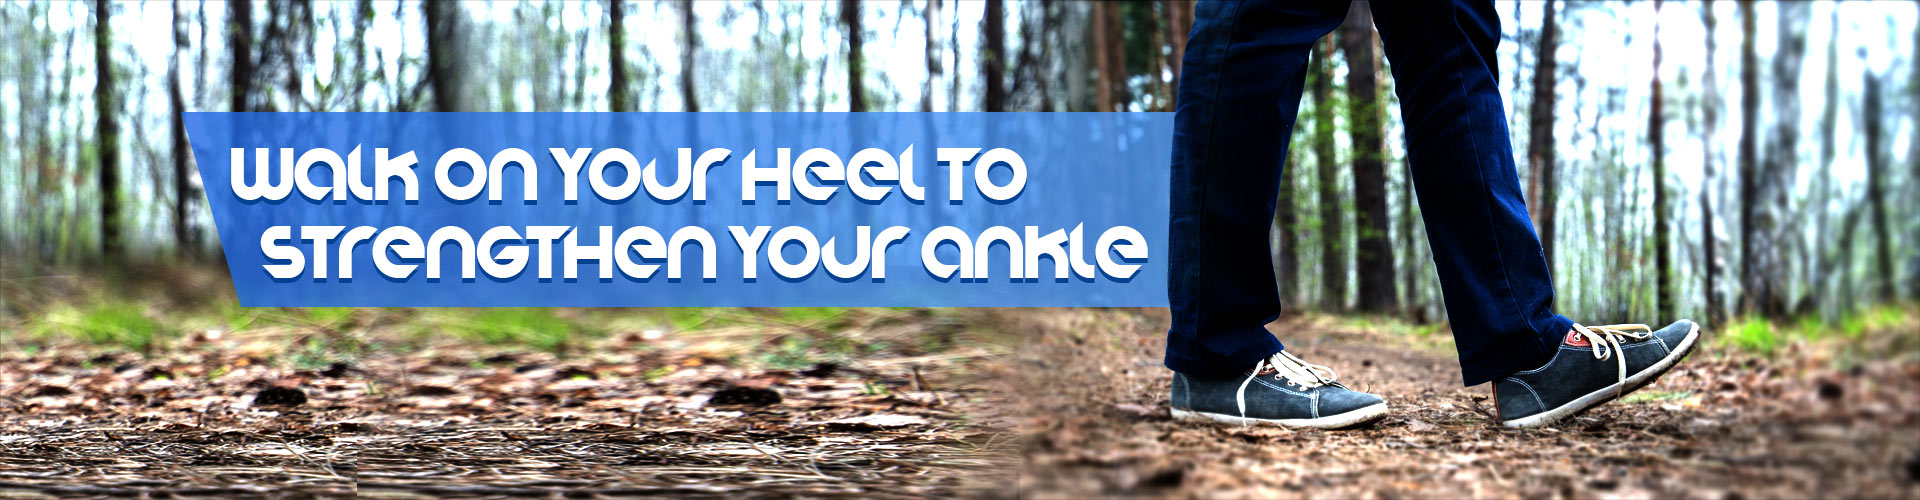 Walk On Your Heel To Strengthen Your Ankle